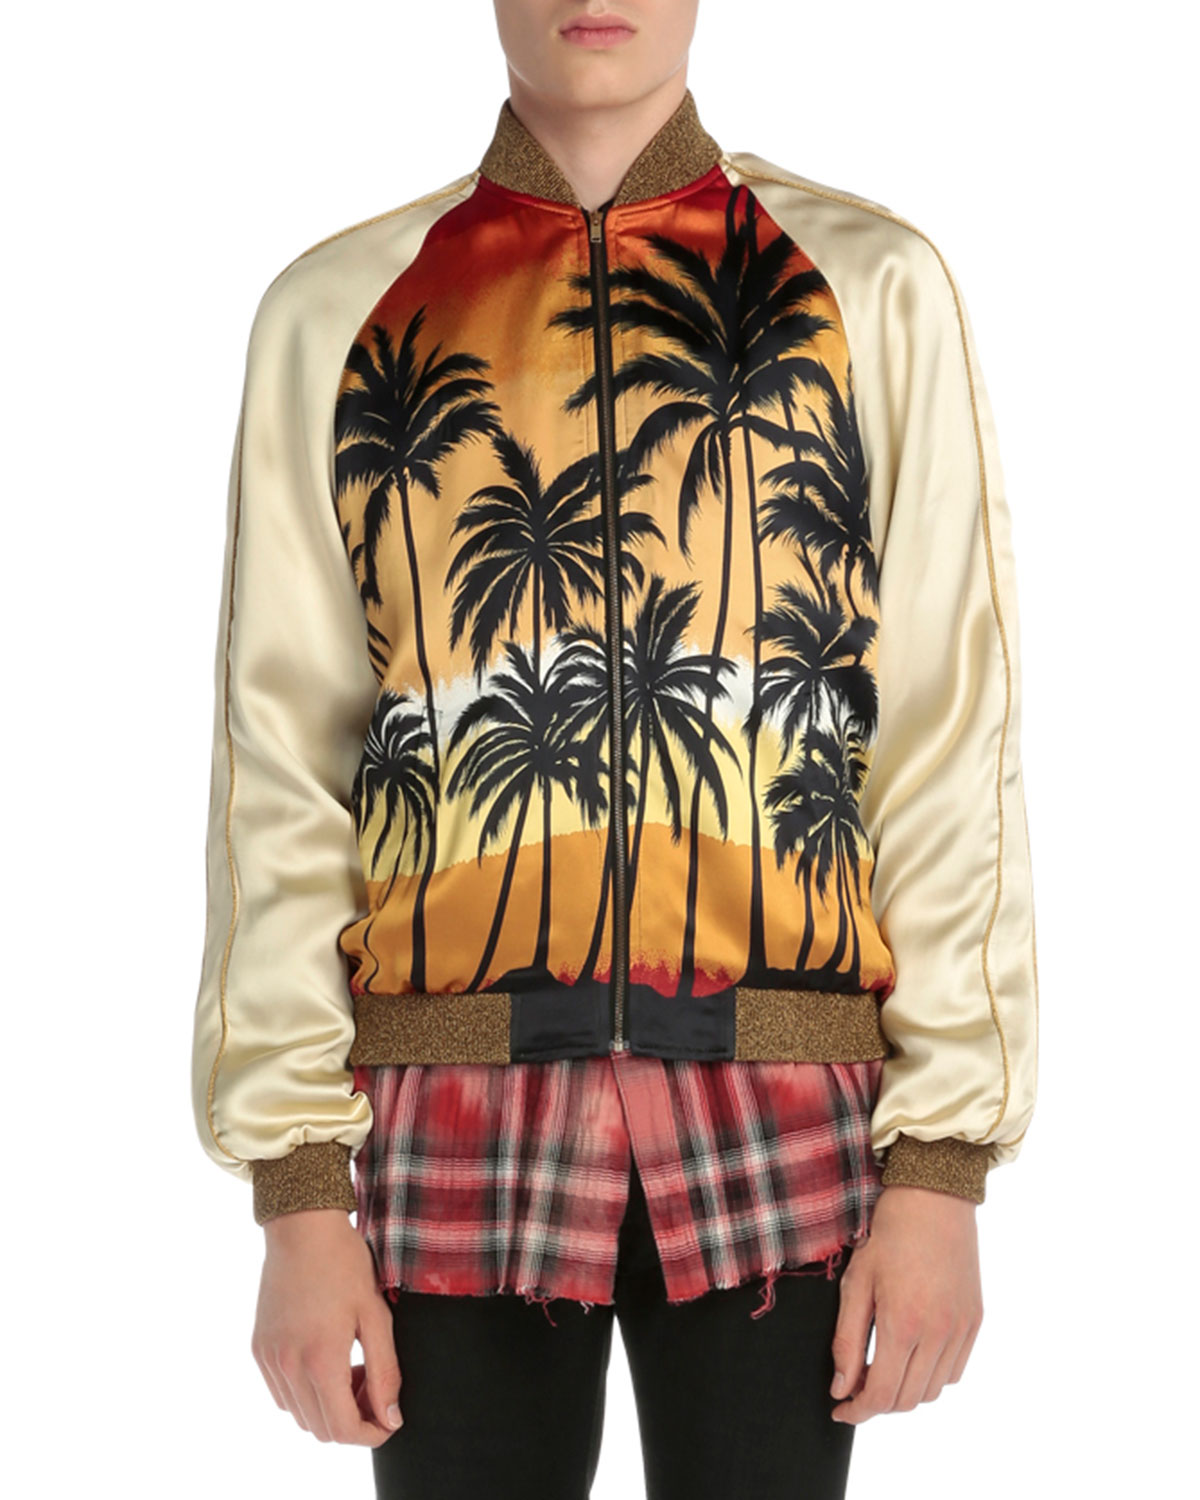 Palm Tree-Print Satin Bomber Jacket, Multi, Women's, Size: 50 - Saint Laurent